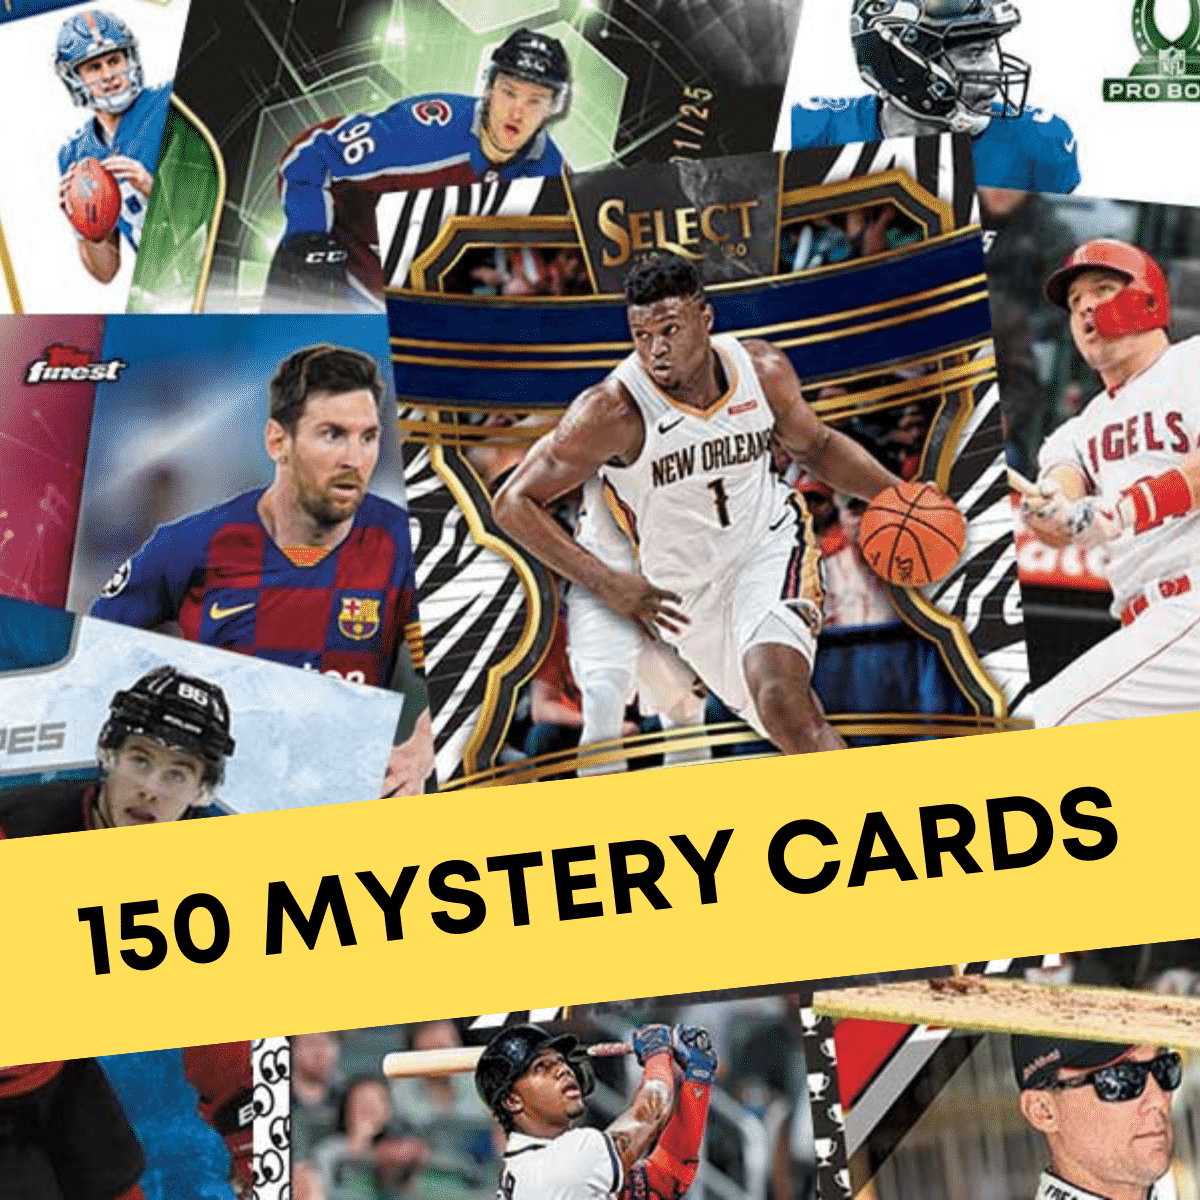 150 Mystery Sports Cards